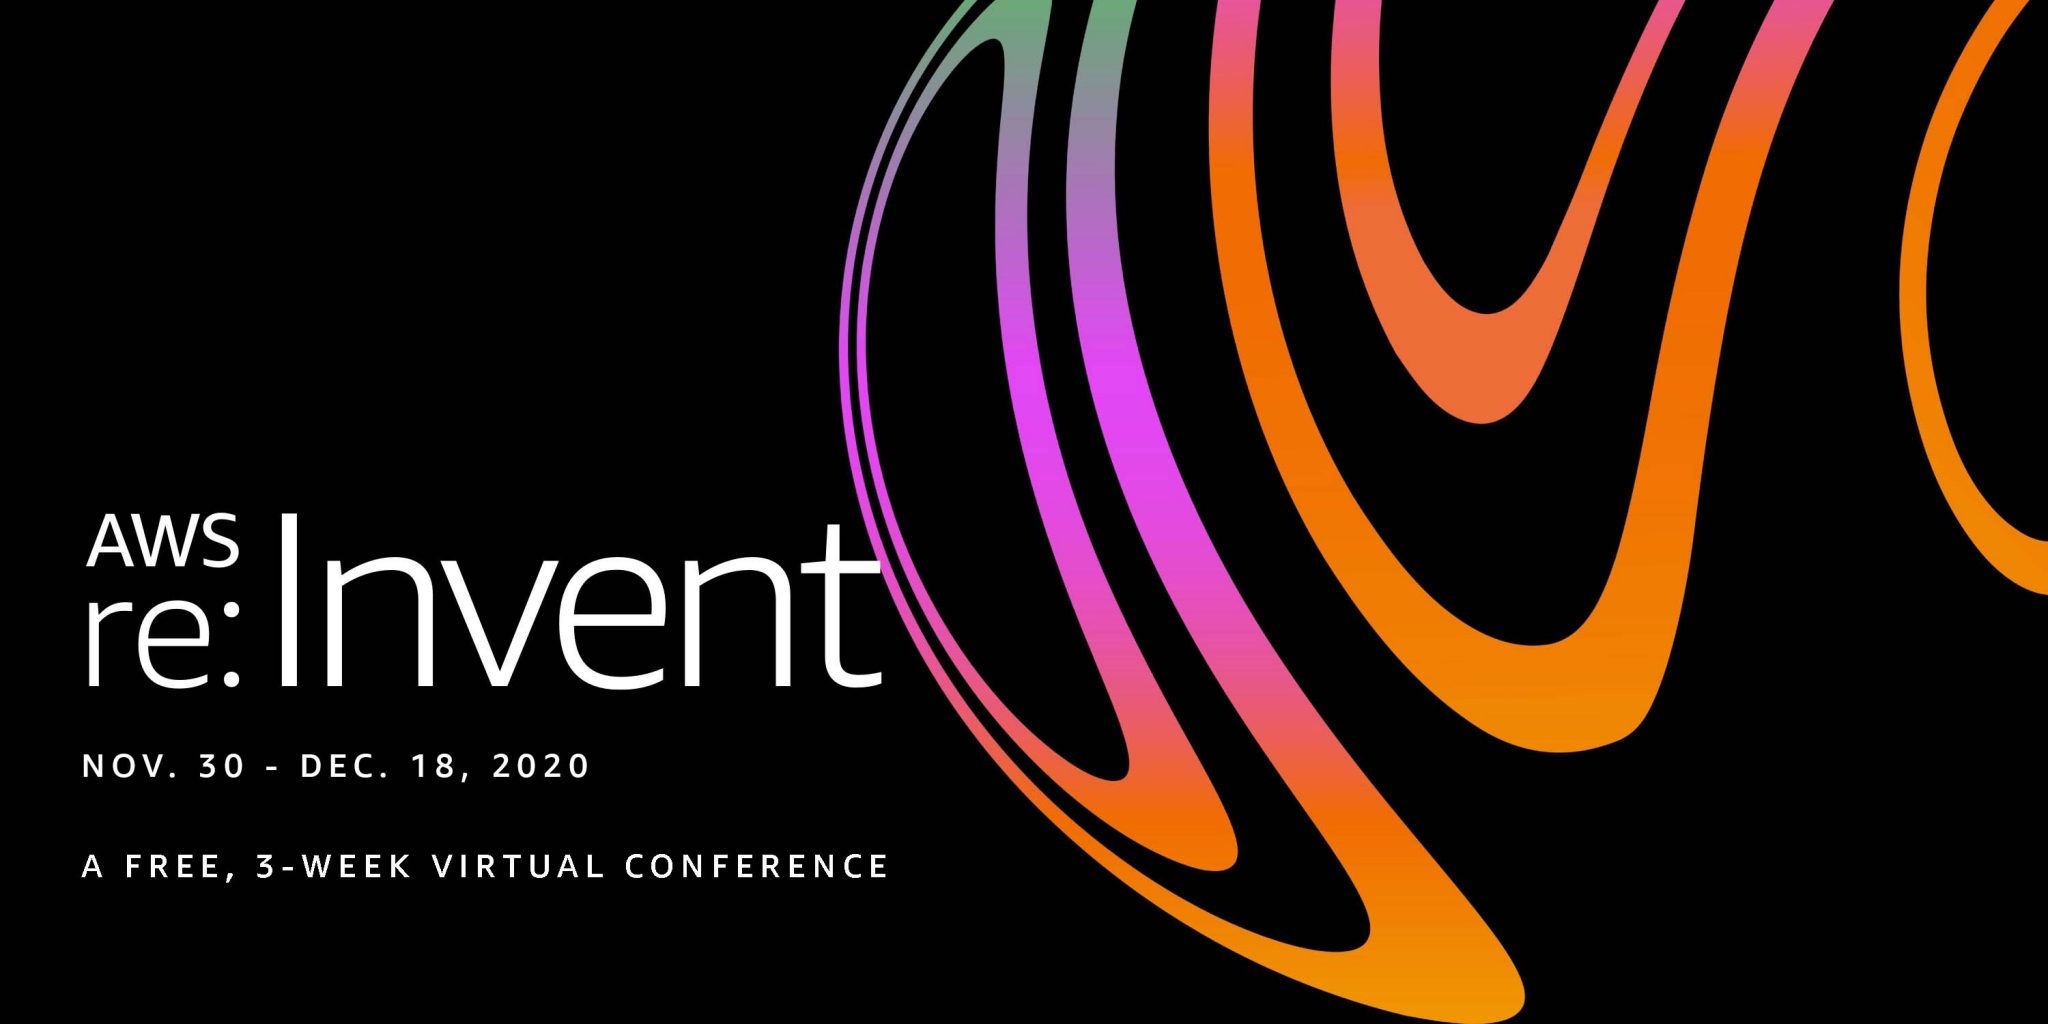 AWS re:Invent Online 2020